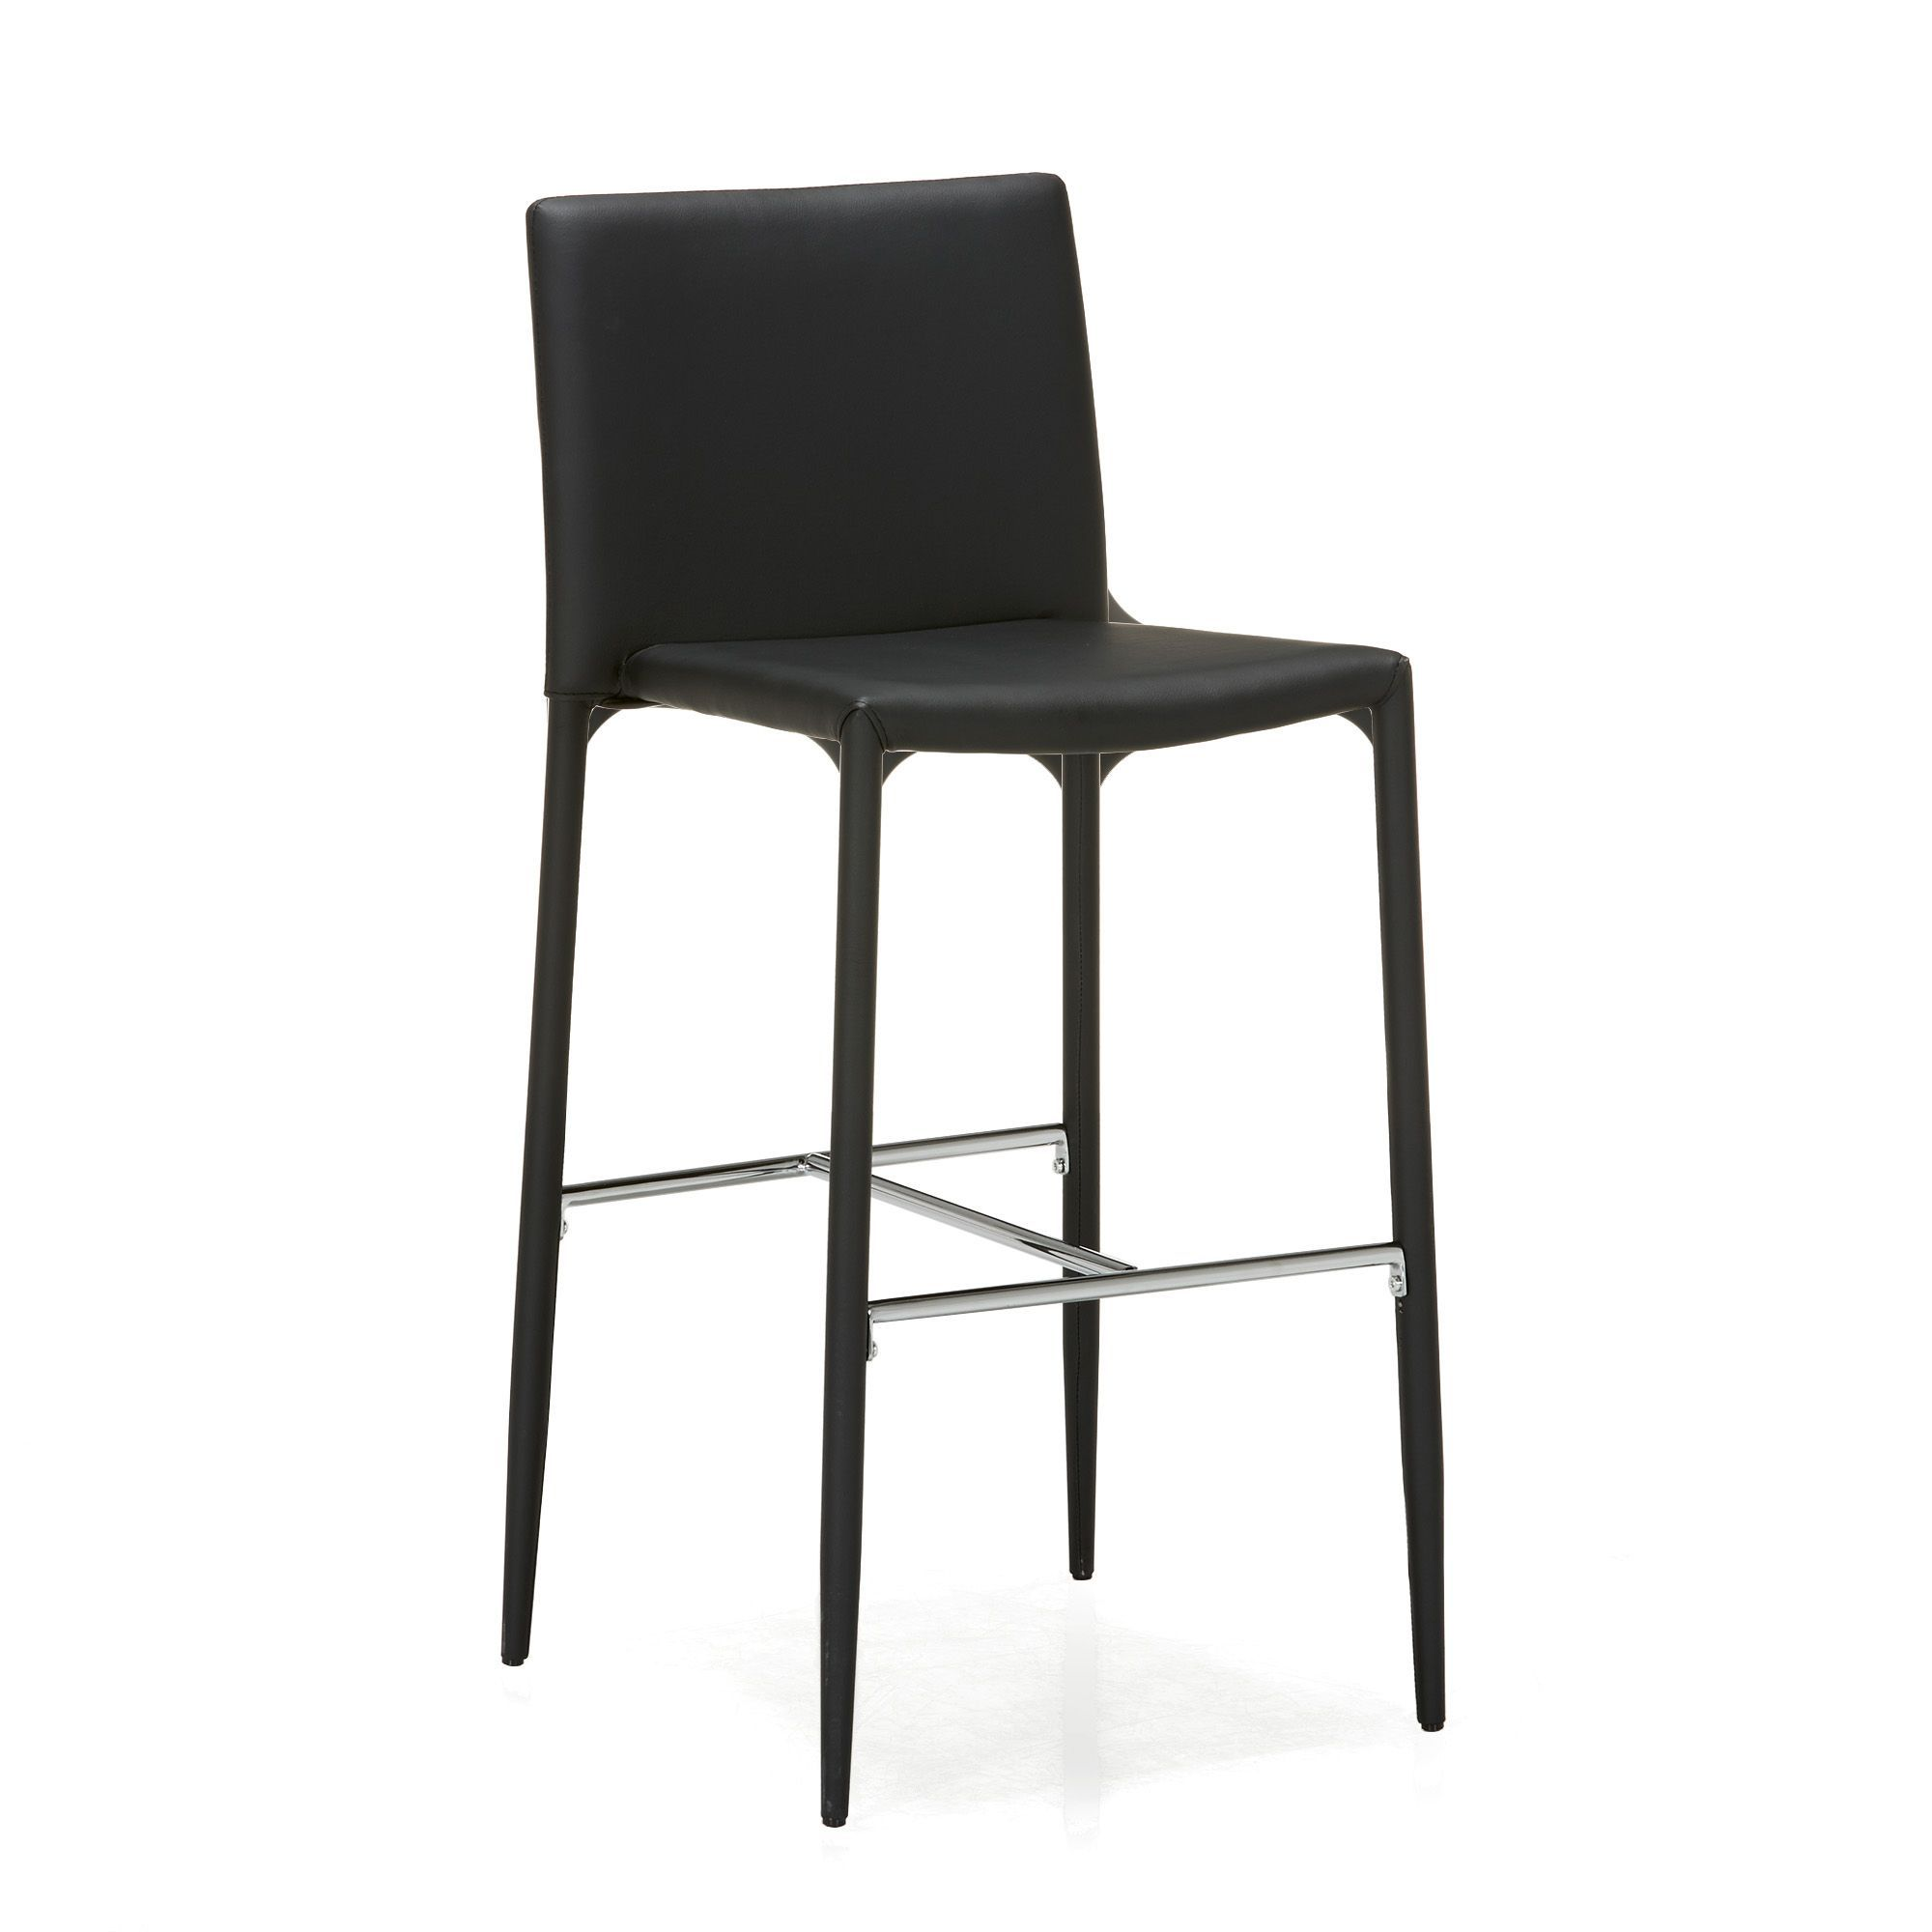 Chaise De Bar Noire Slash Tabourets Hauts Tables Et Chaises Salon Et Salle A Manger Par Piece Decoration Interi Chaise Bar Table Et Chaises Chaises Salon